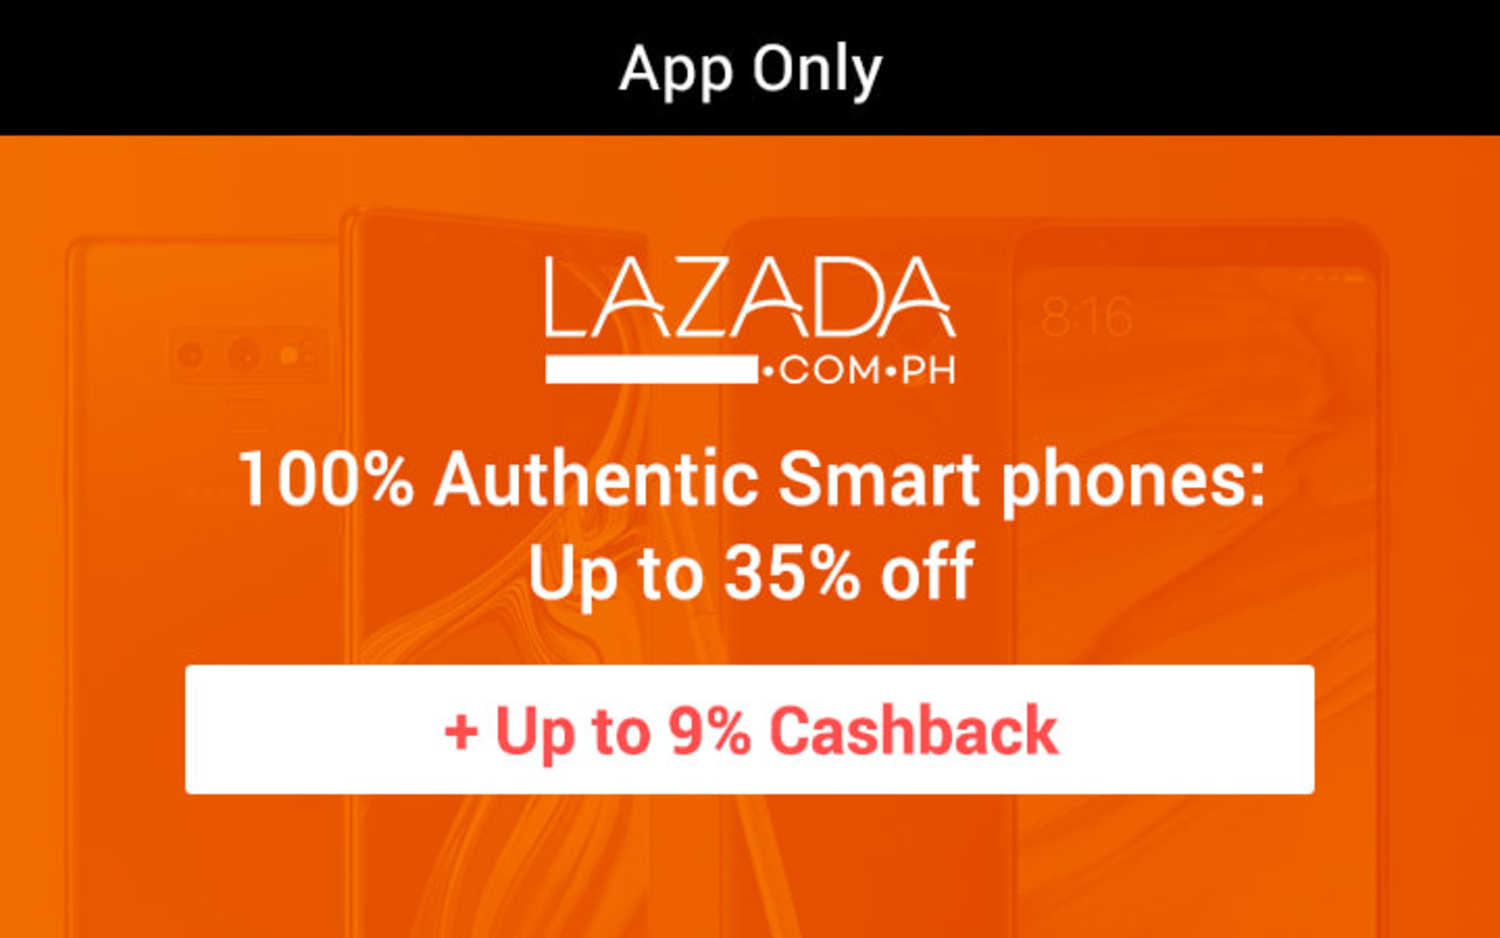 Lazada Mobile App | 100% Authentic Smart phones: Up to 35% off + Up to 9% Cashback